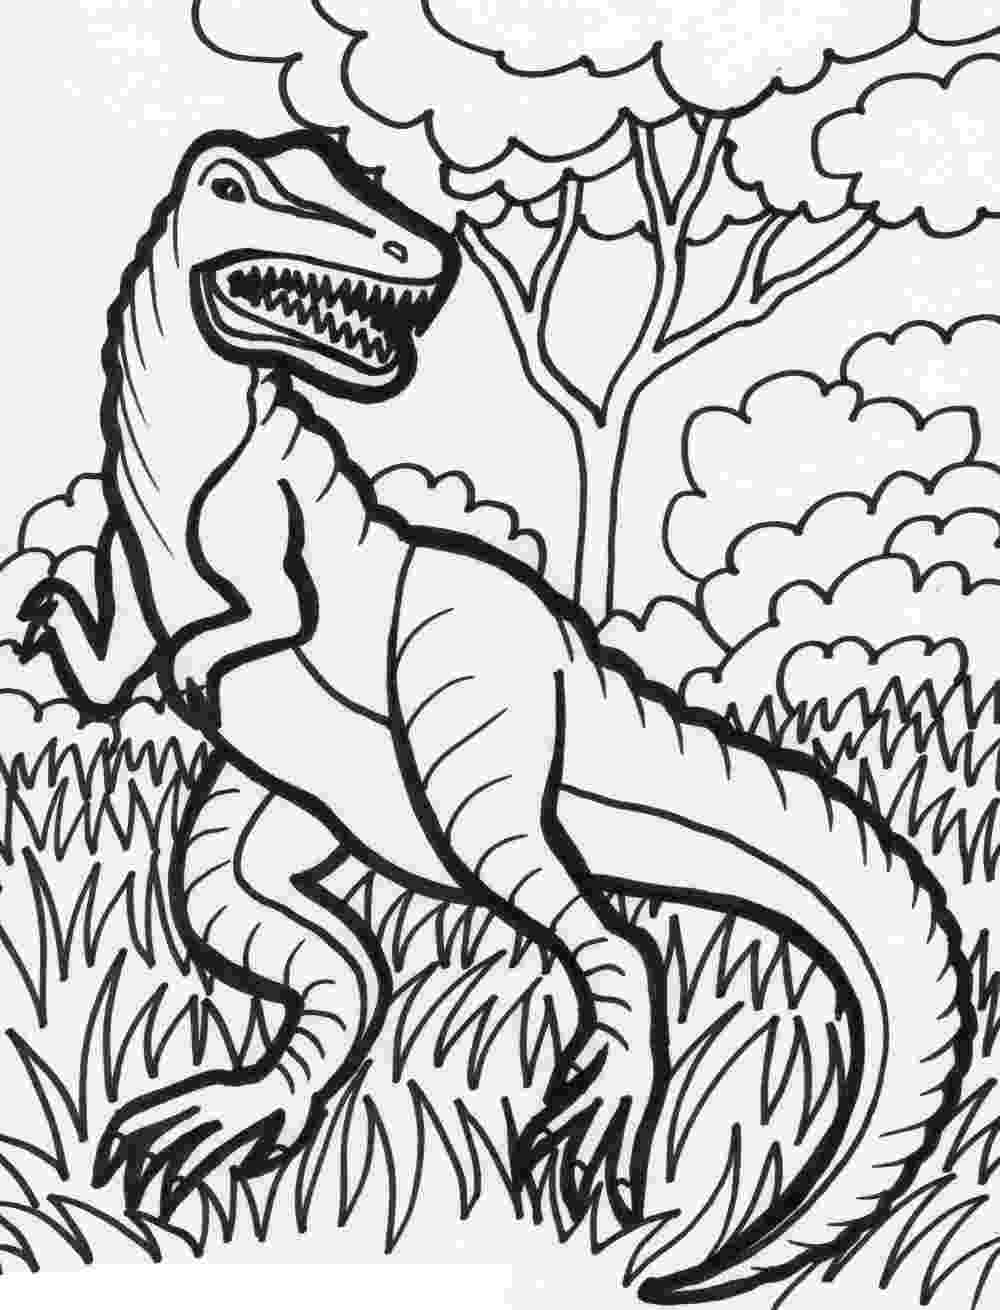 dinosaurs for coloring free printable dinosaur coloring pages for kids dinosaurs coloring for 1 2